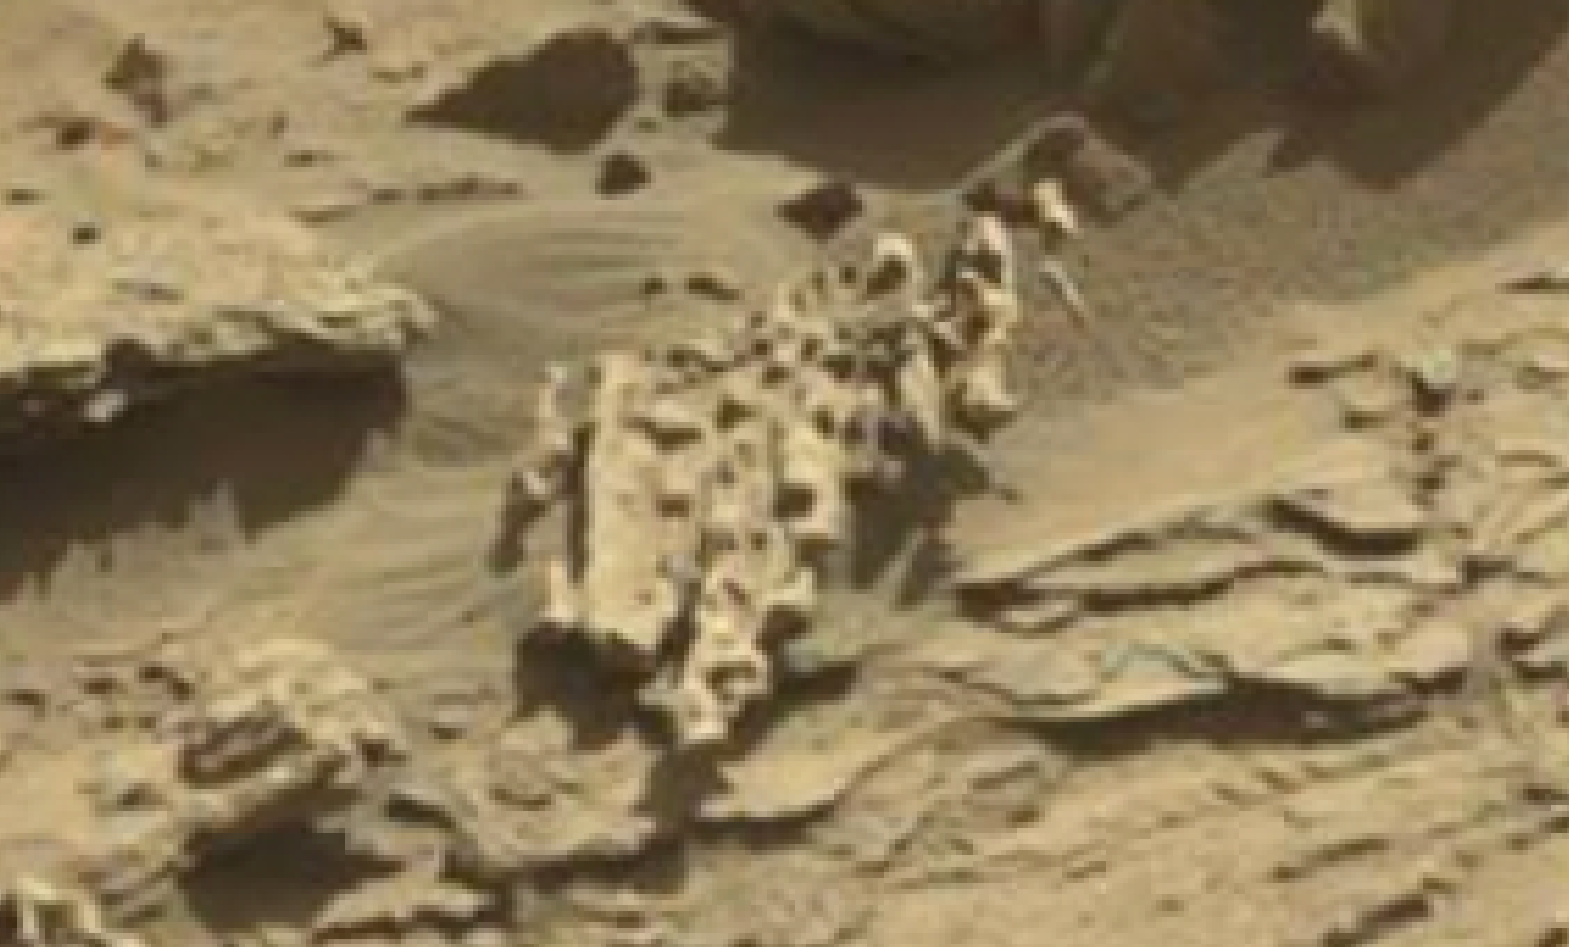 mars sol 1298 anomaly-artifacts 4 was life on mars